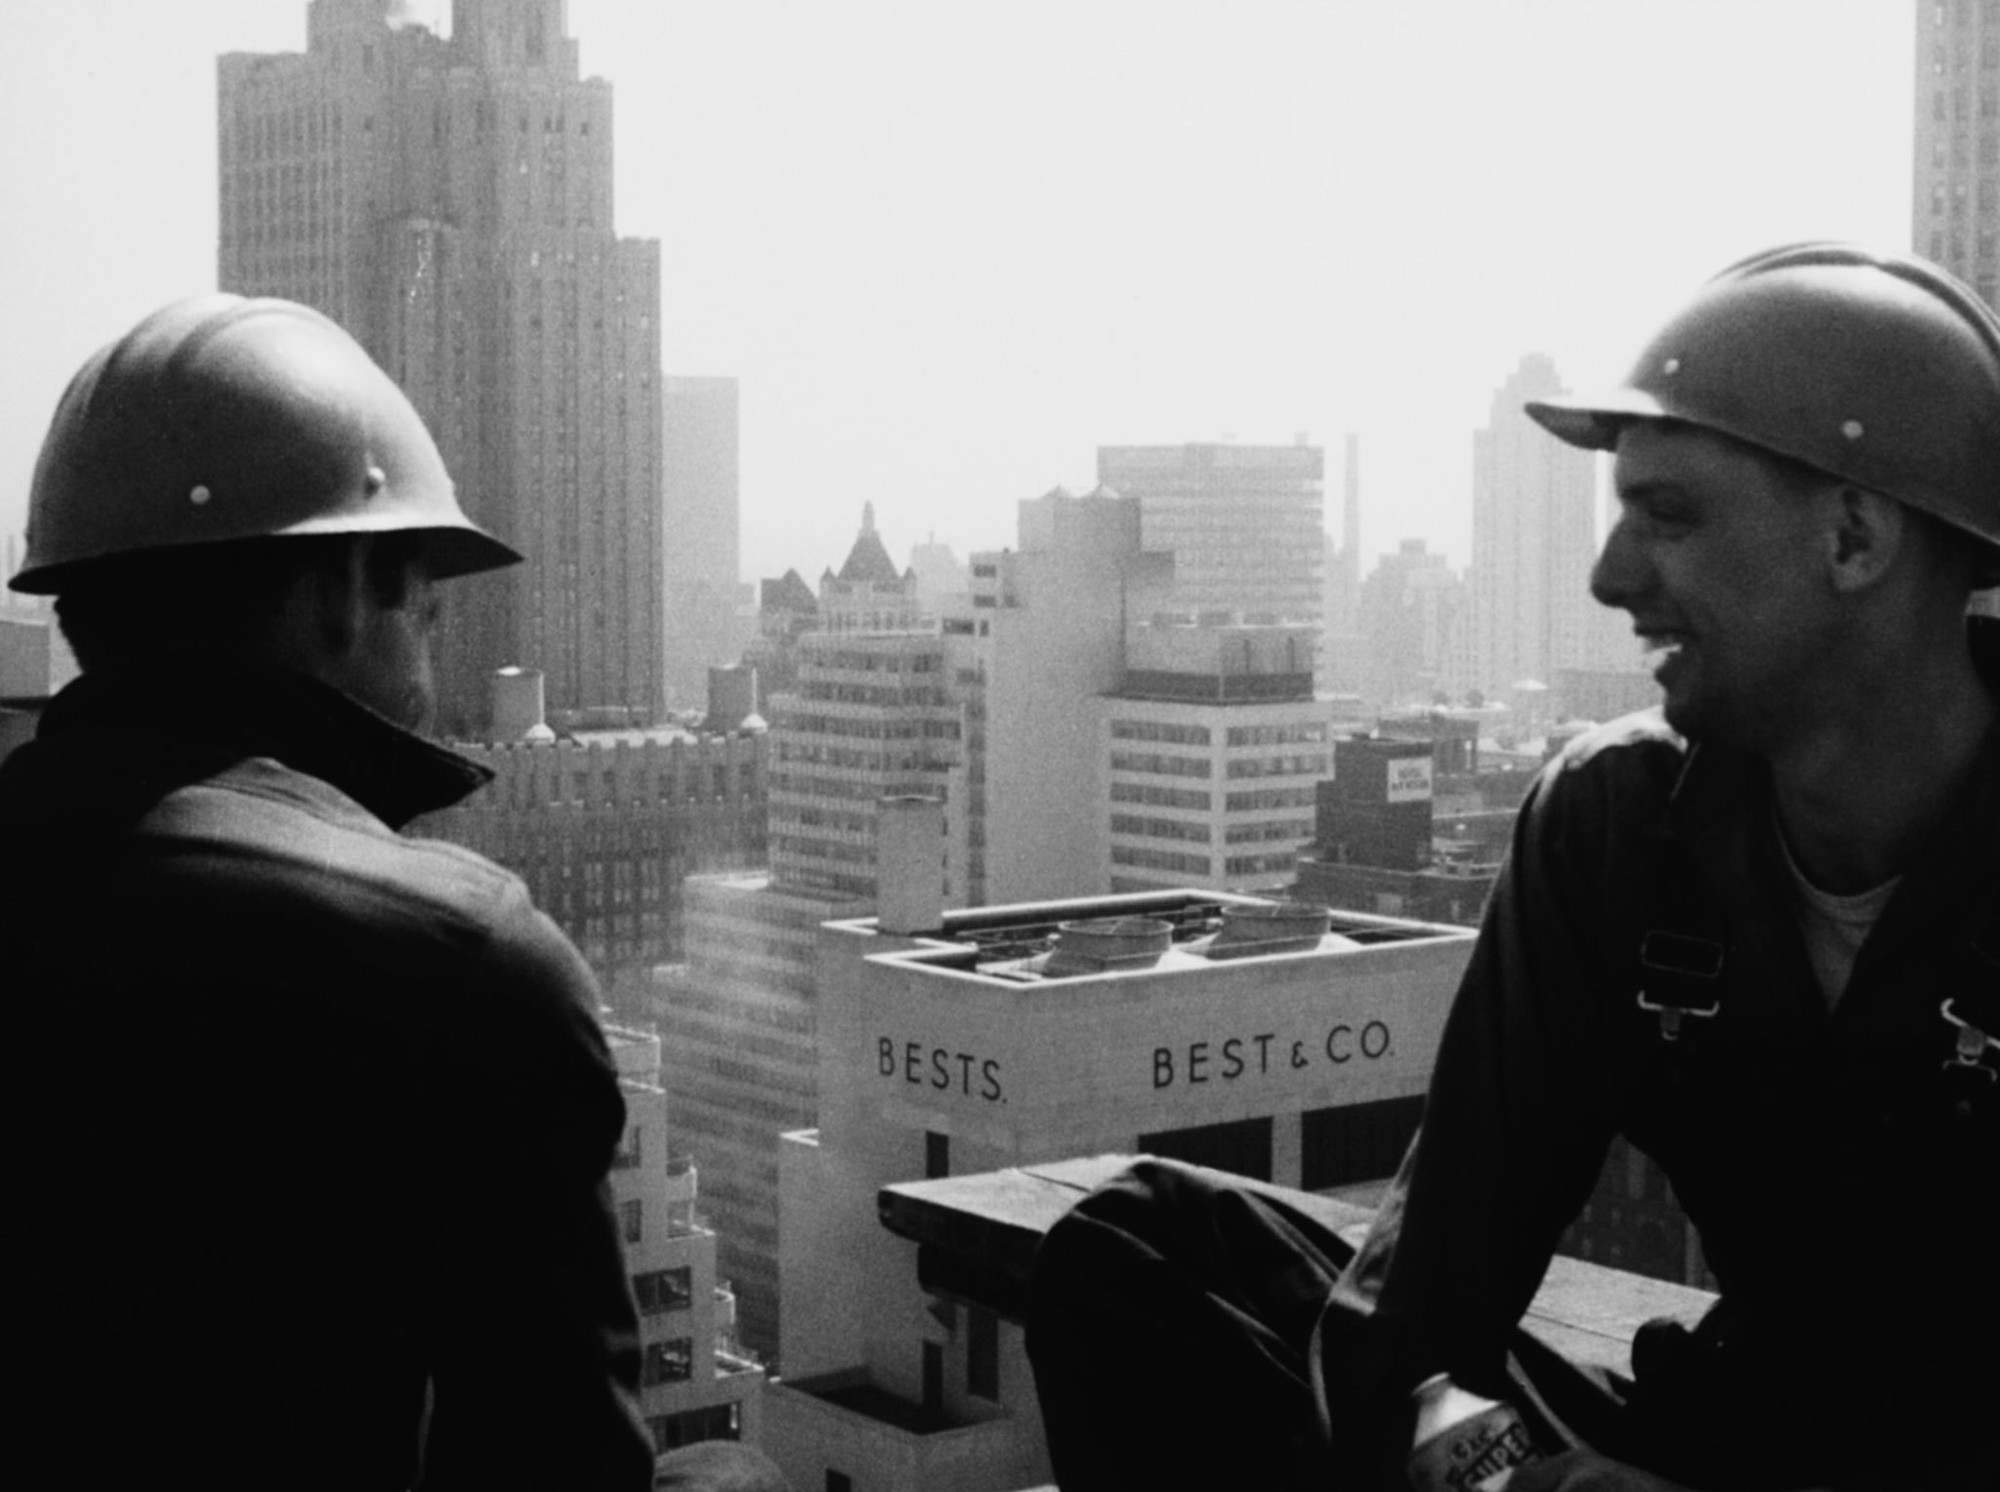 Skyscraper. 1959. USA. Directed by Shirley Clarke. Courtesy of Milestone Films